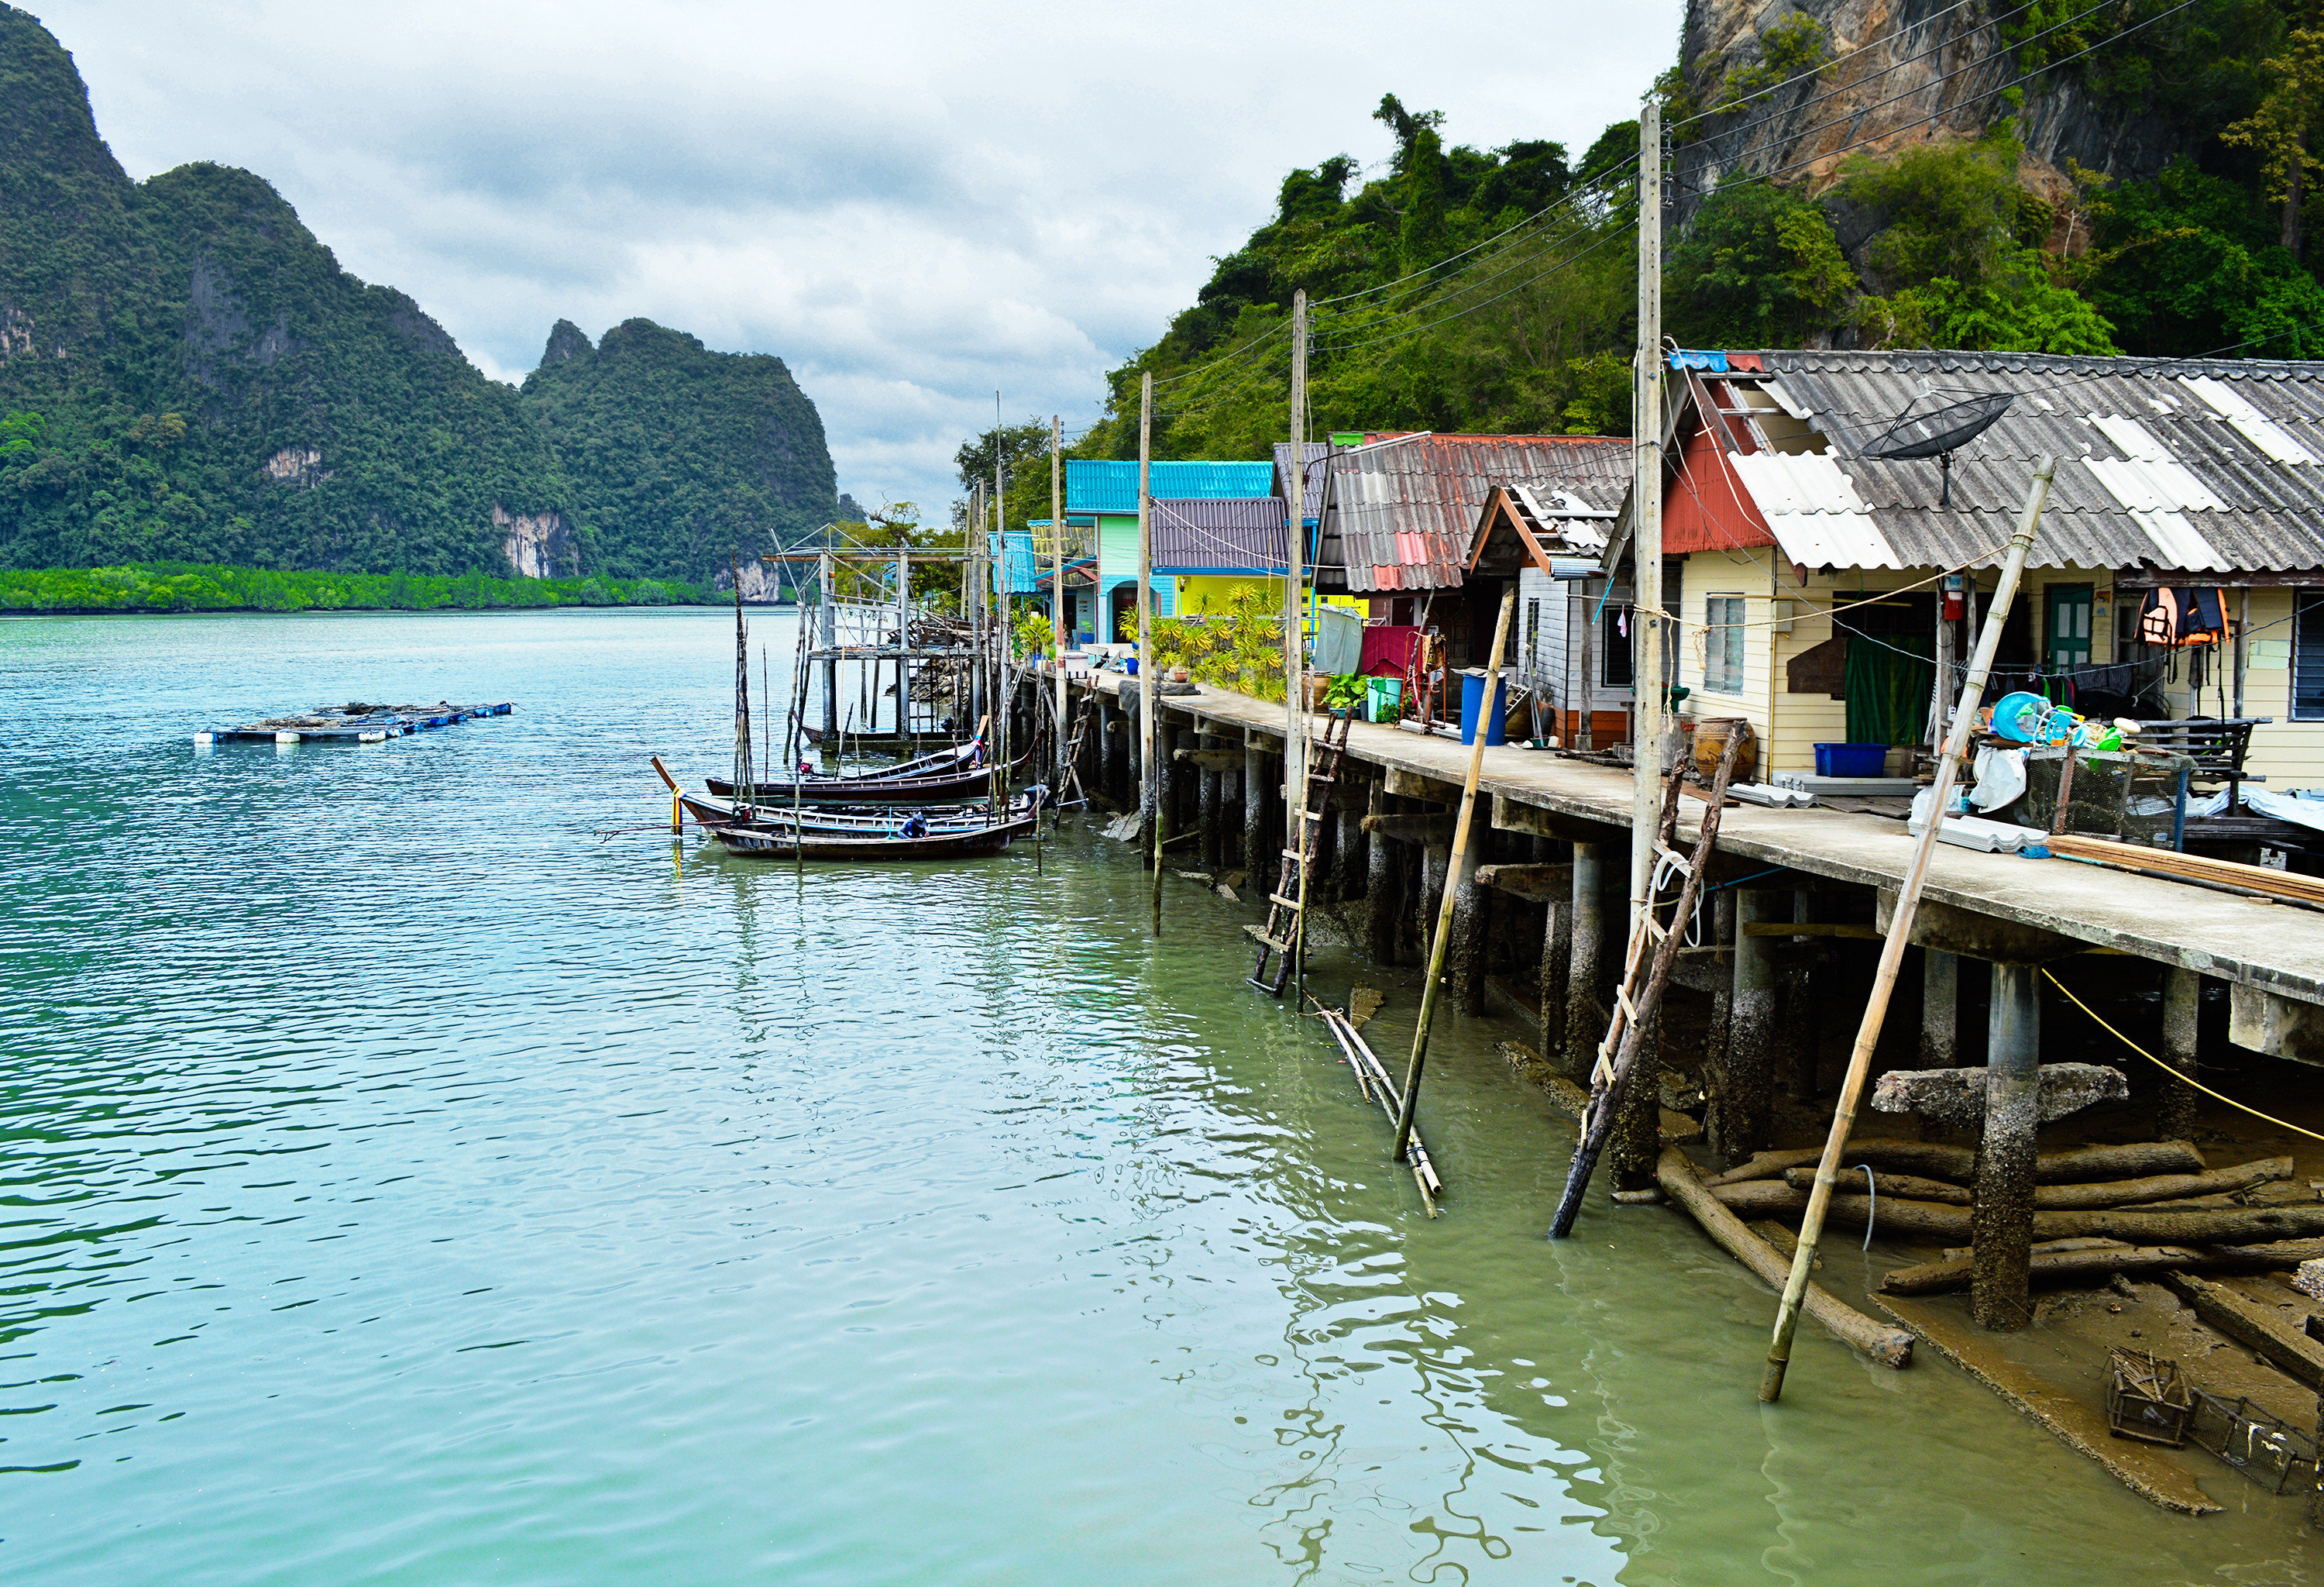 Jetsetter Guides water outdoor Boat mountain landform Sea vehicle dock vacation tourism docked bay Lake boating waterway Harbor travel surrounded